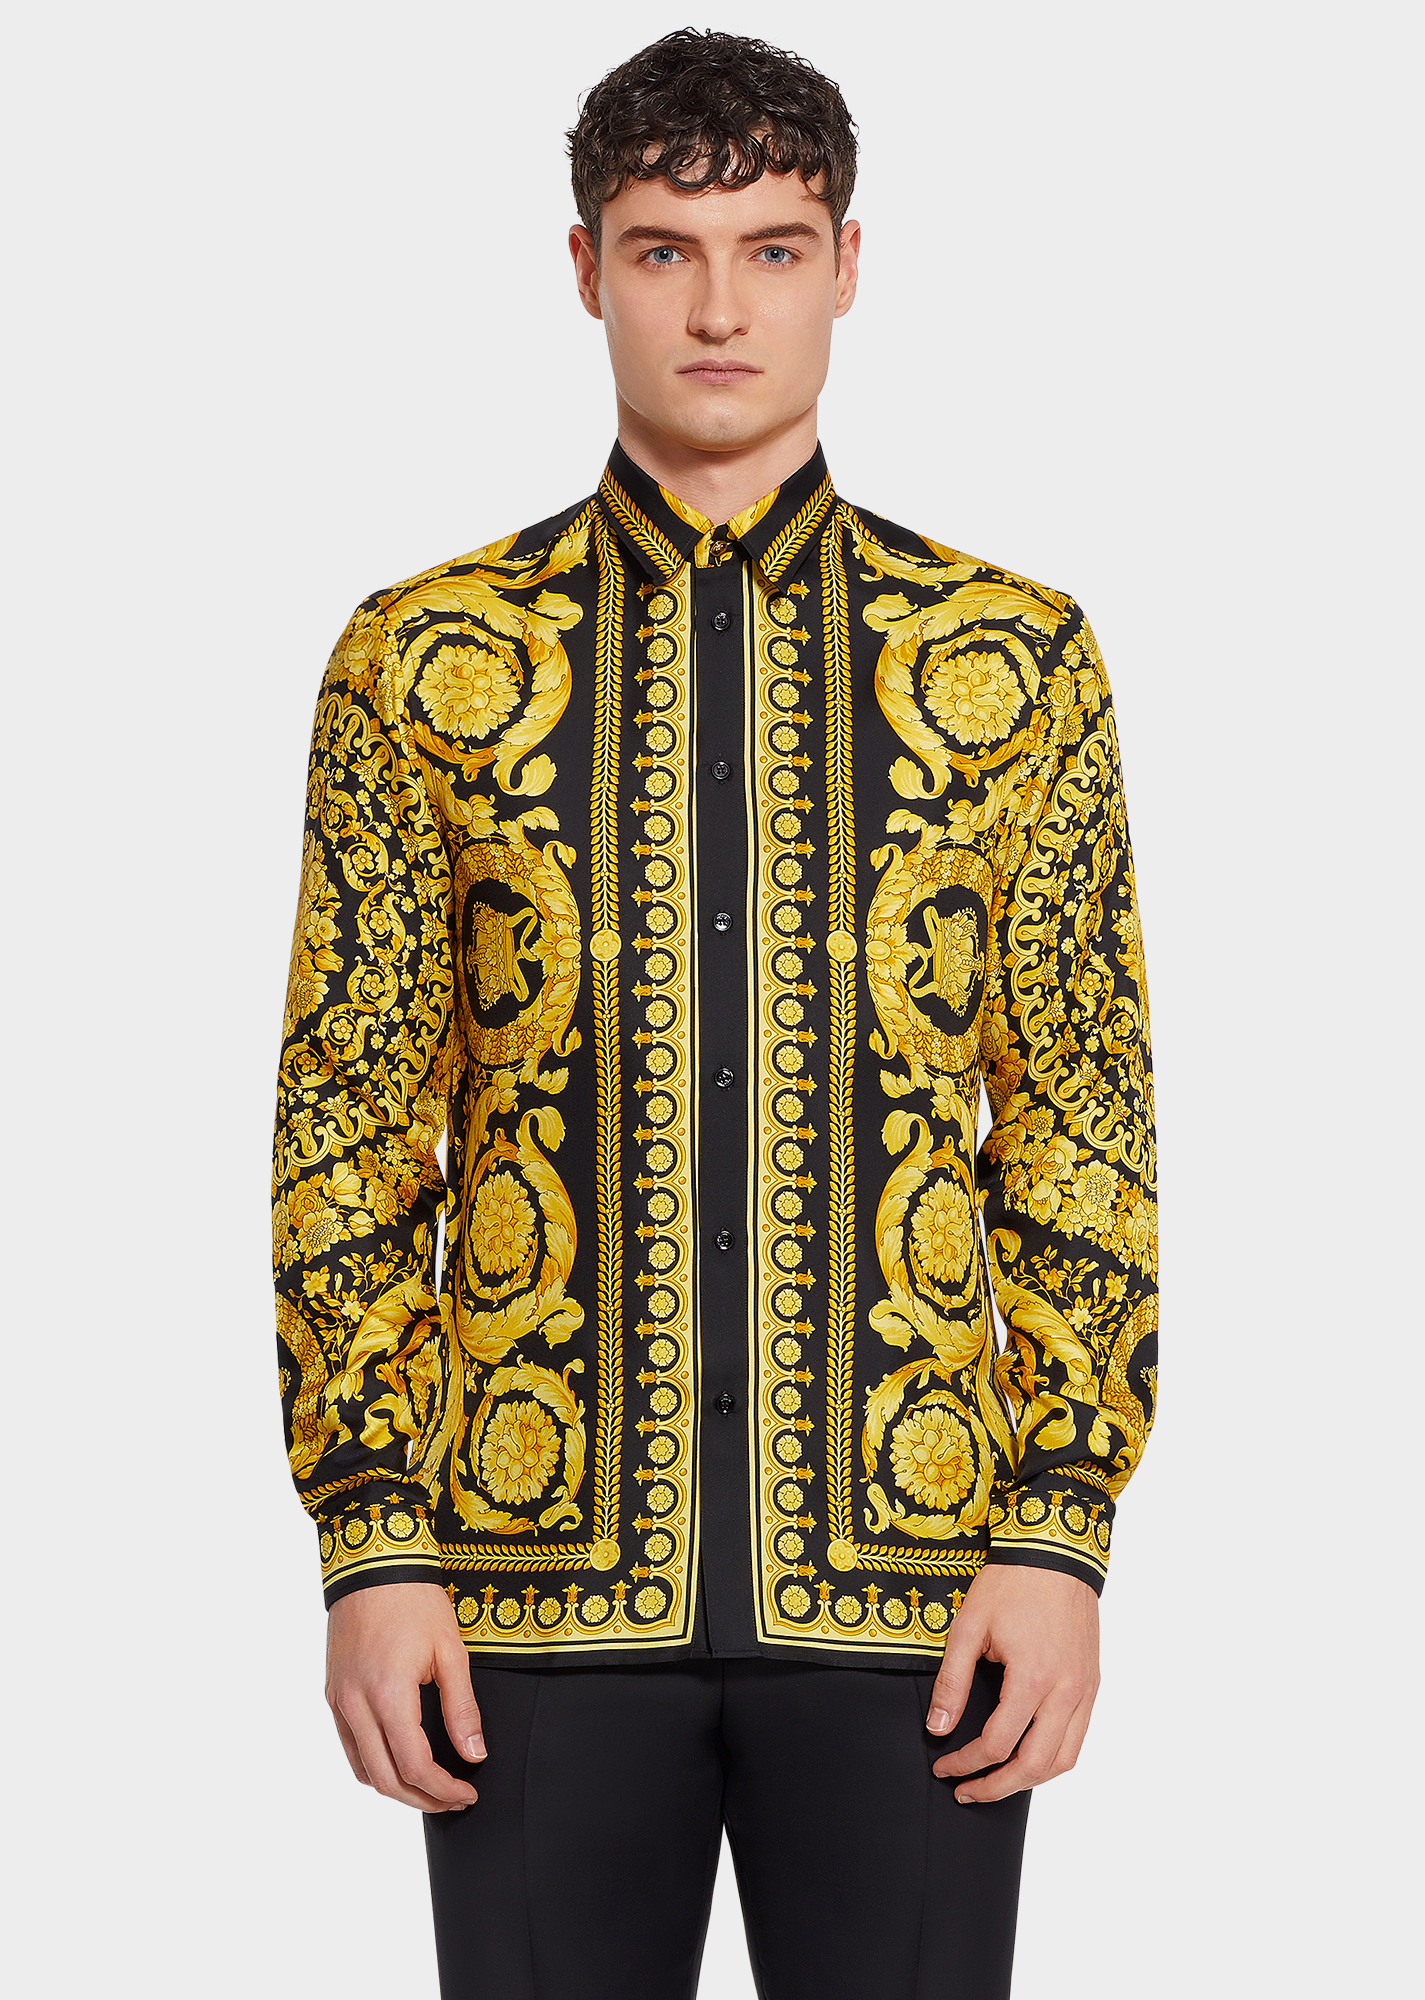 411be78e3f Barocco SS'91 Silk Shirt for Men | UK Online Store in 2019 | Costume ...